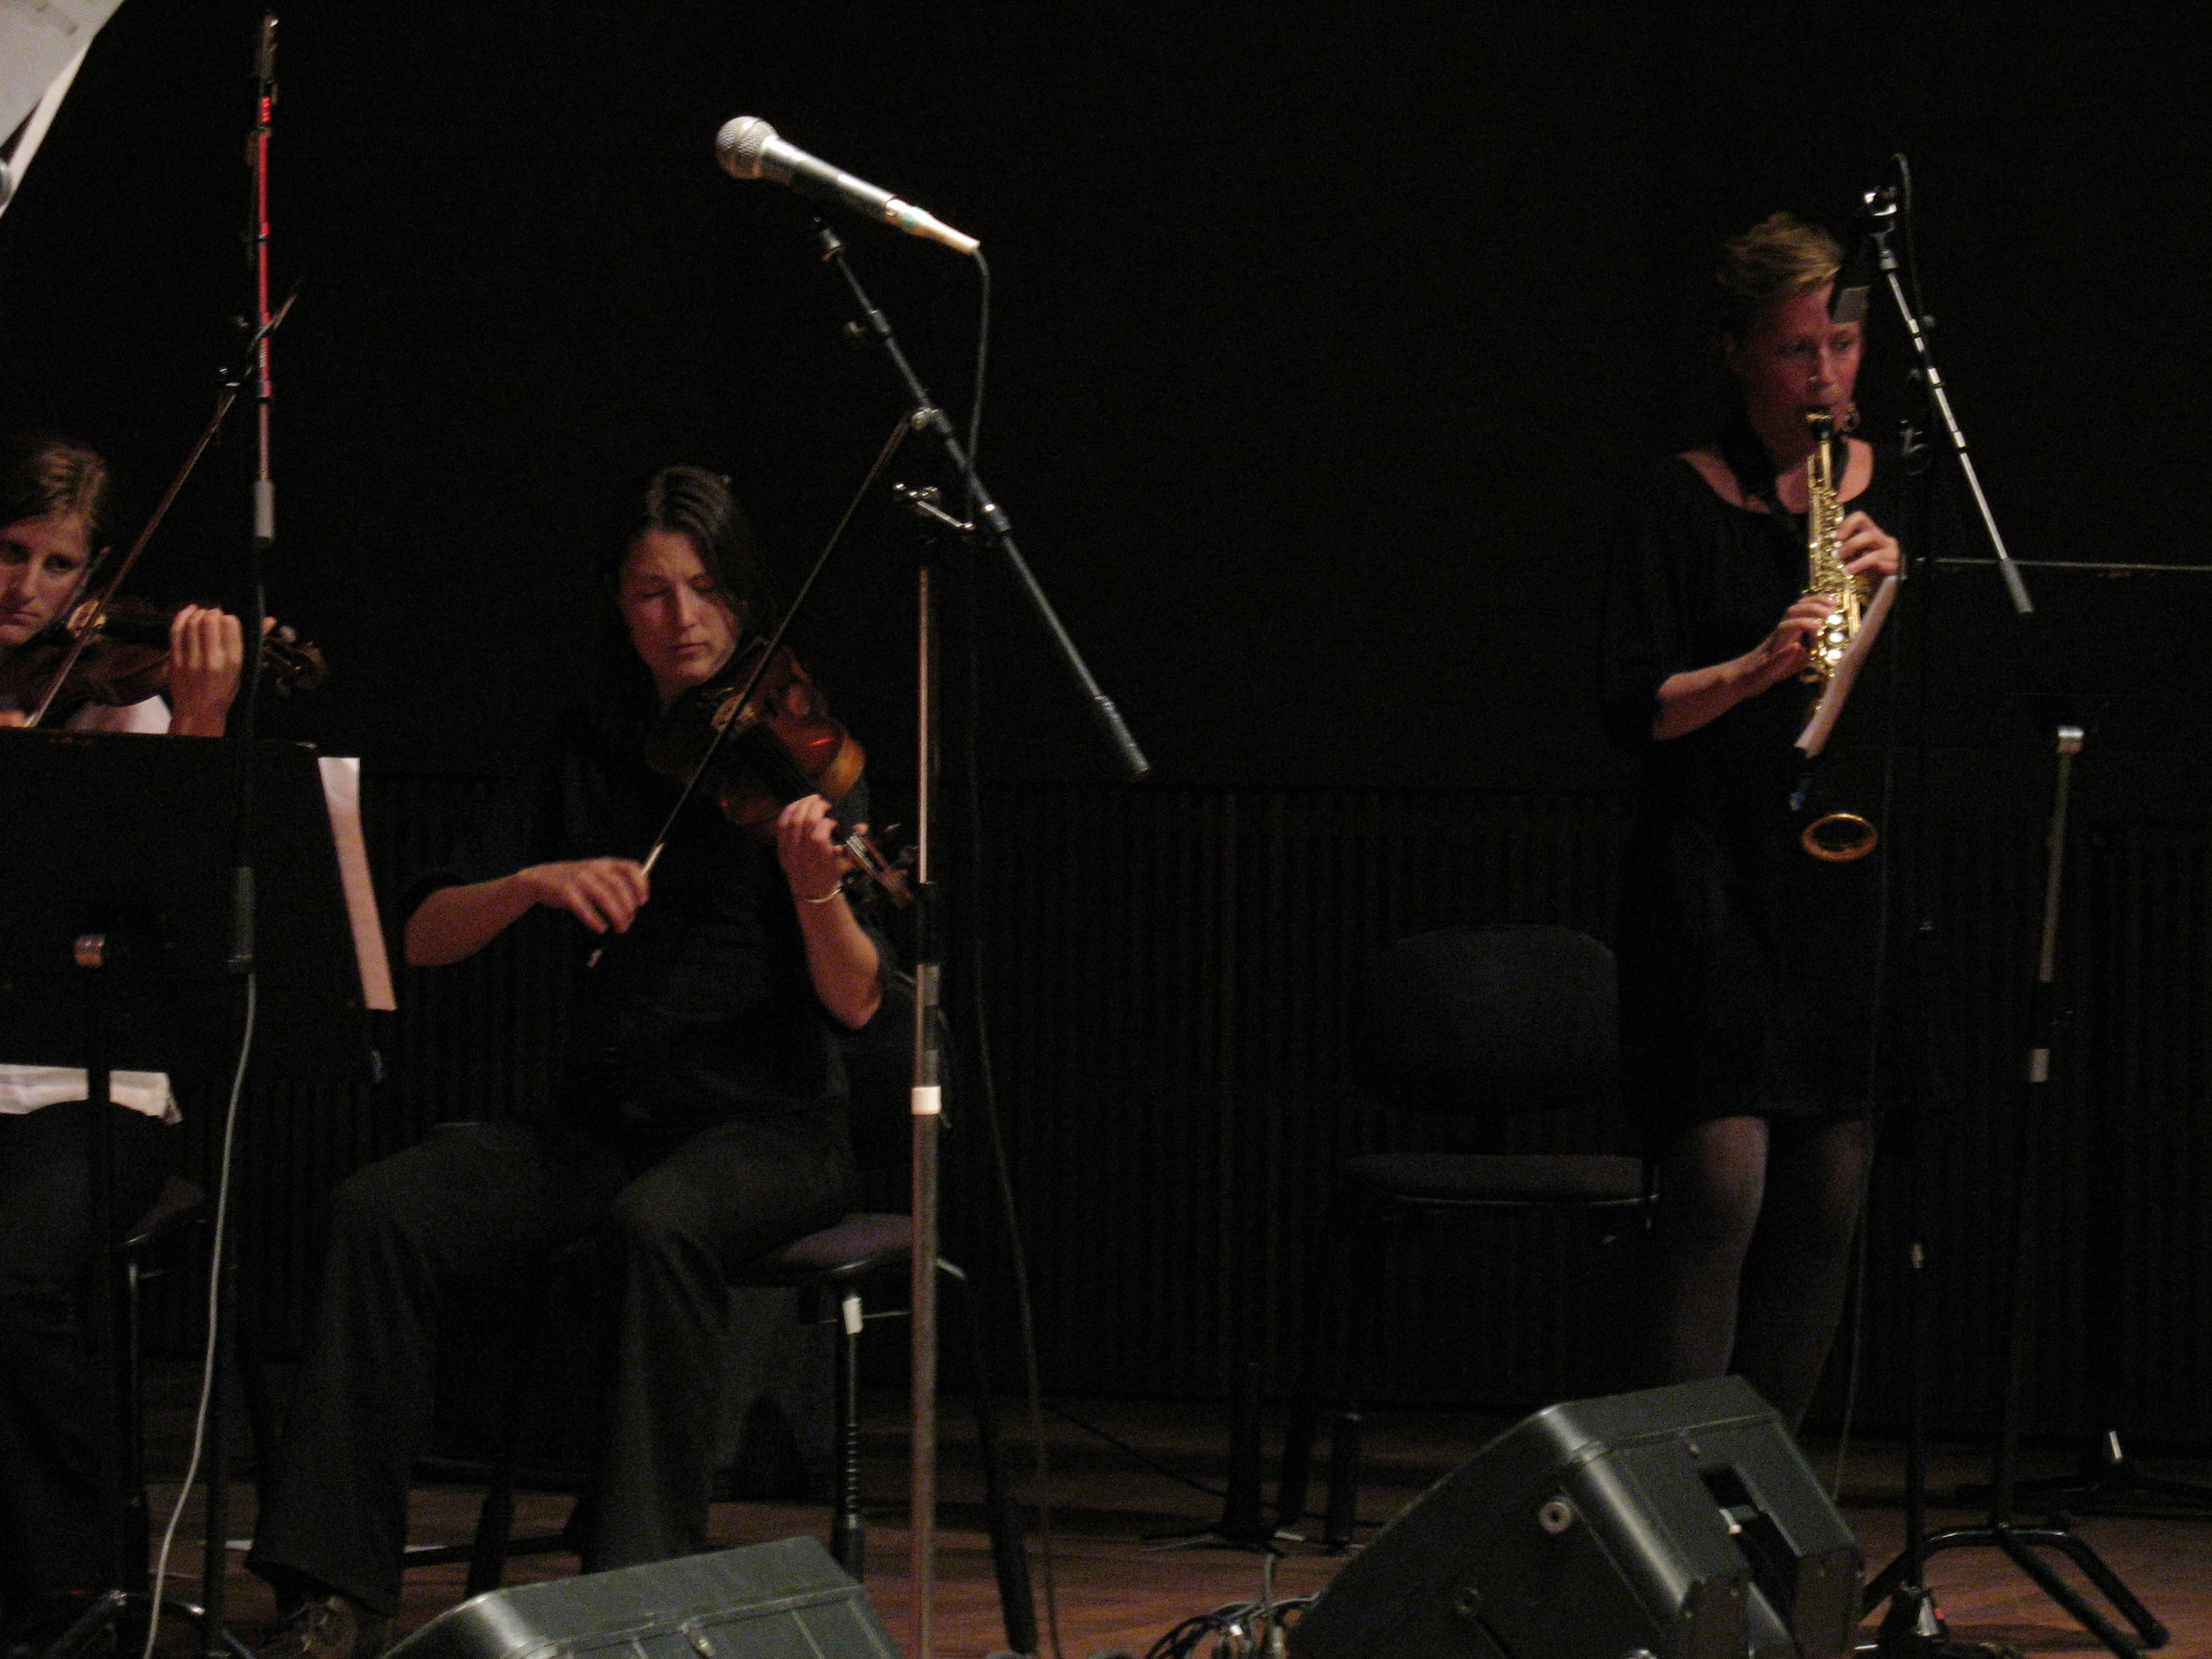 Pictures from the examination concert 033.jpg